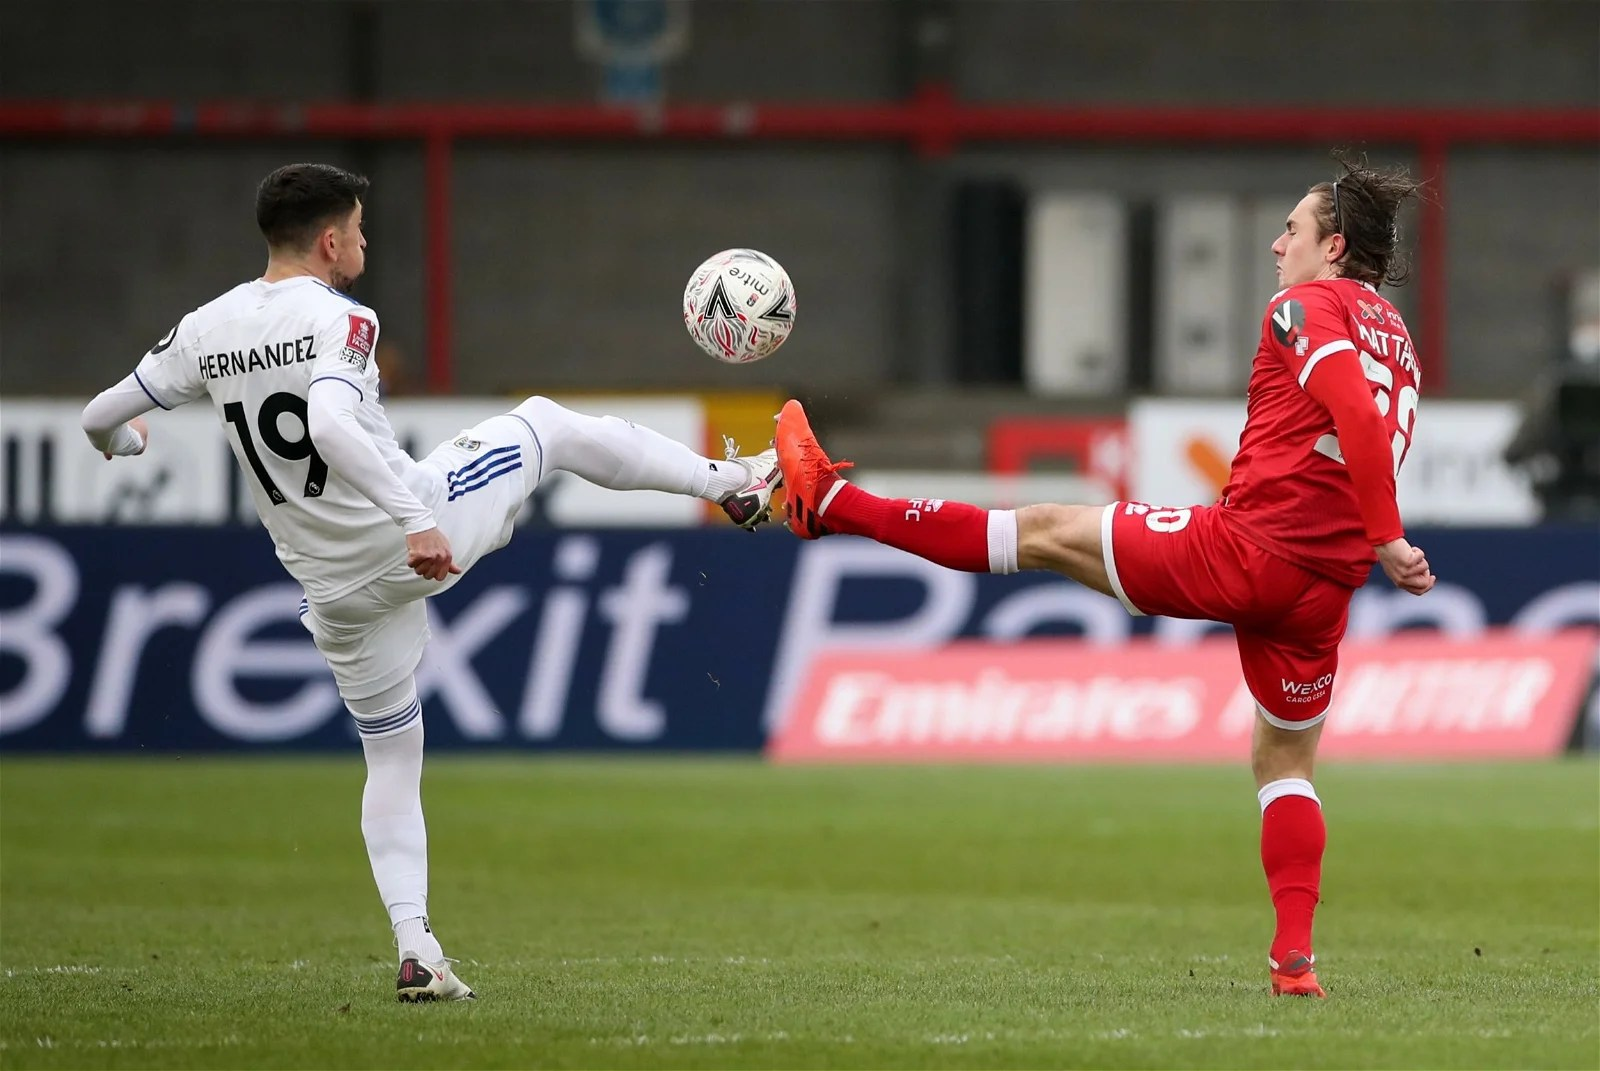 Crawley Town 3-0 Leeds: Pablo Hernandez in abject form on Sunday